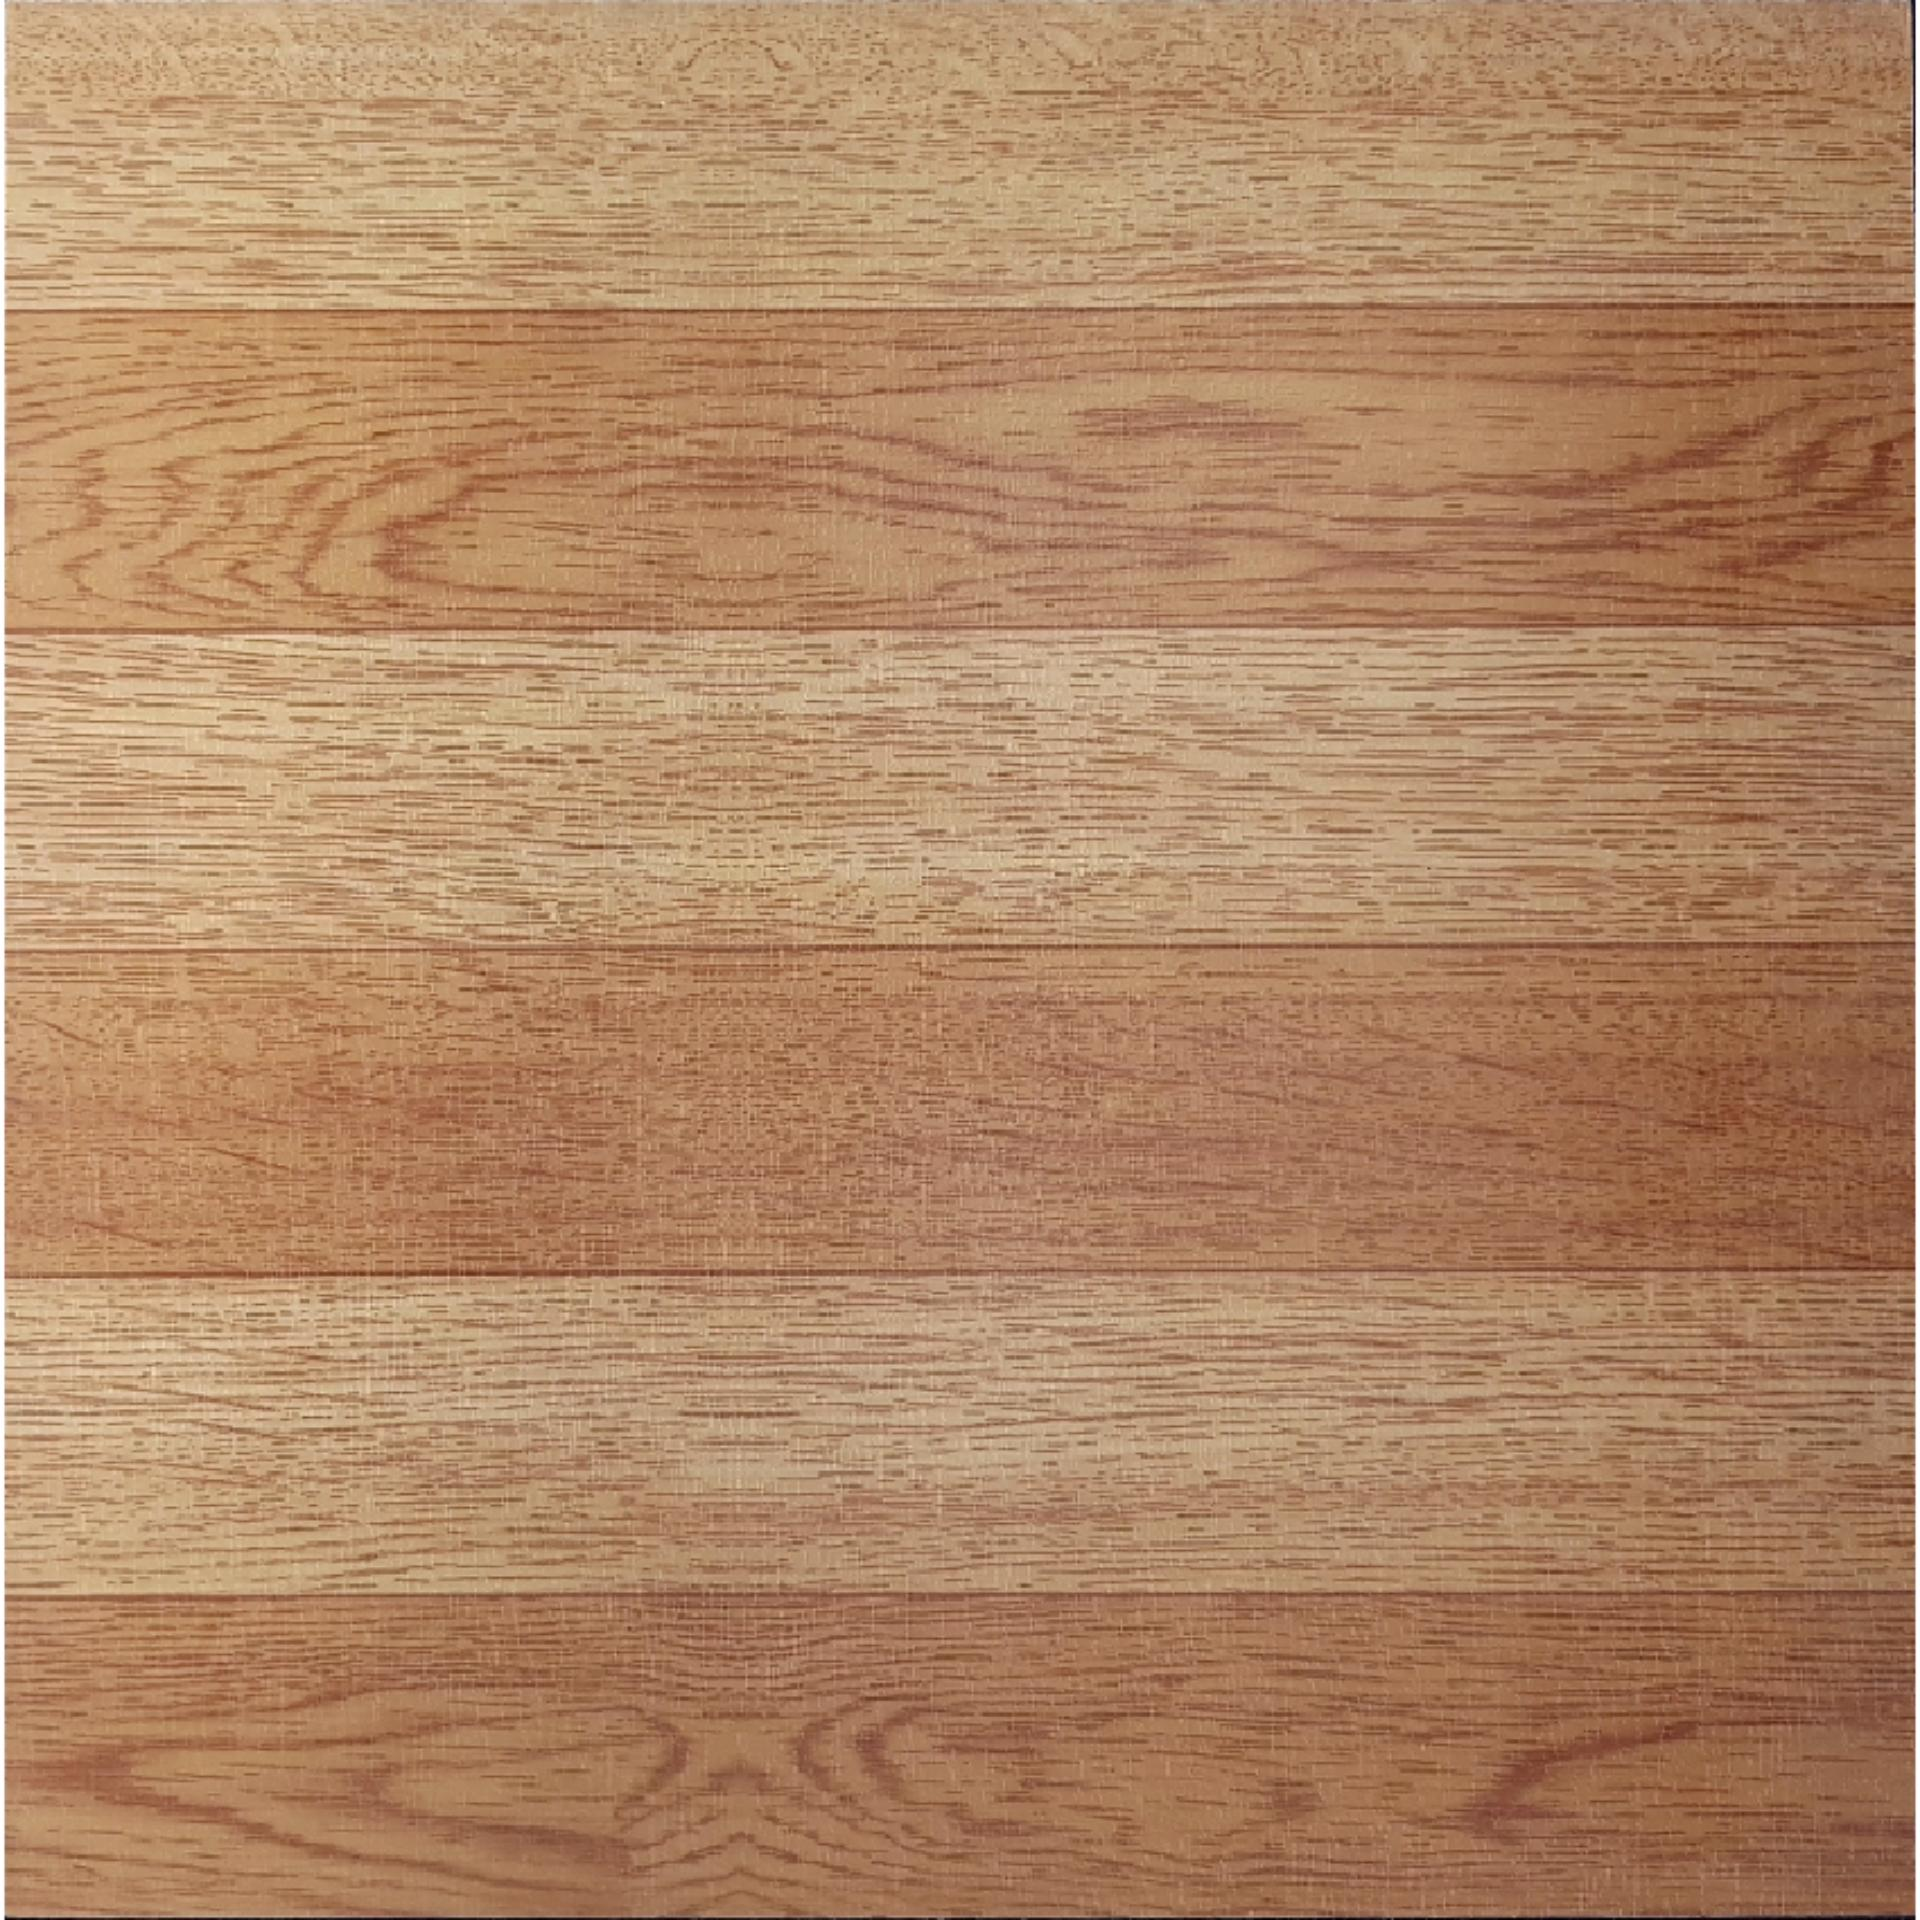 Vinyl tiles for sale vinyl flooring prices brands review in uni luxury vinyl tile flooring 60pcs 30x30cm wooden alternating shade dailygadgetfo Image collections